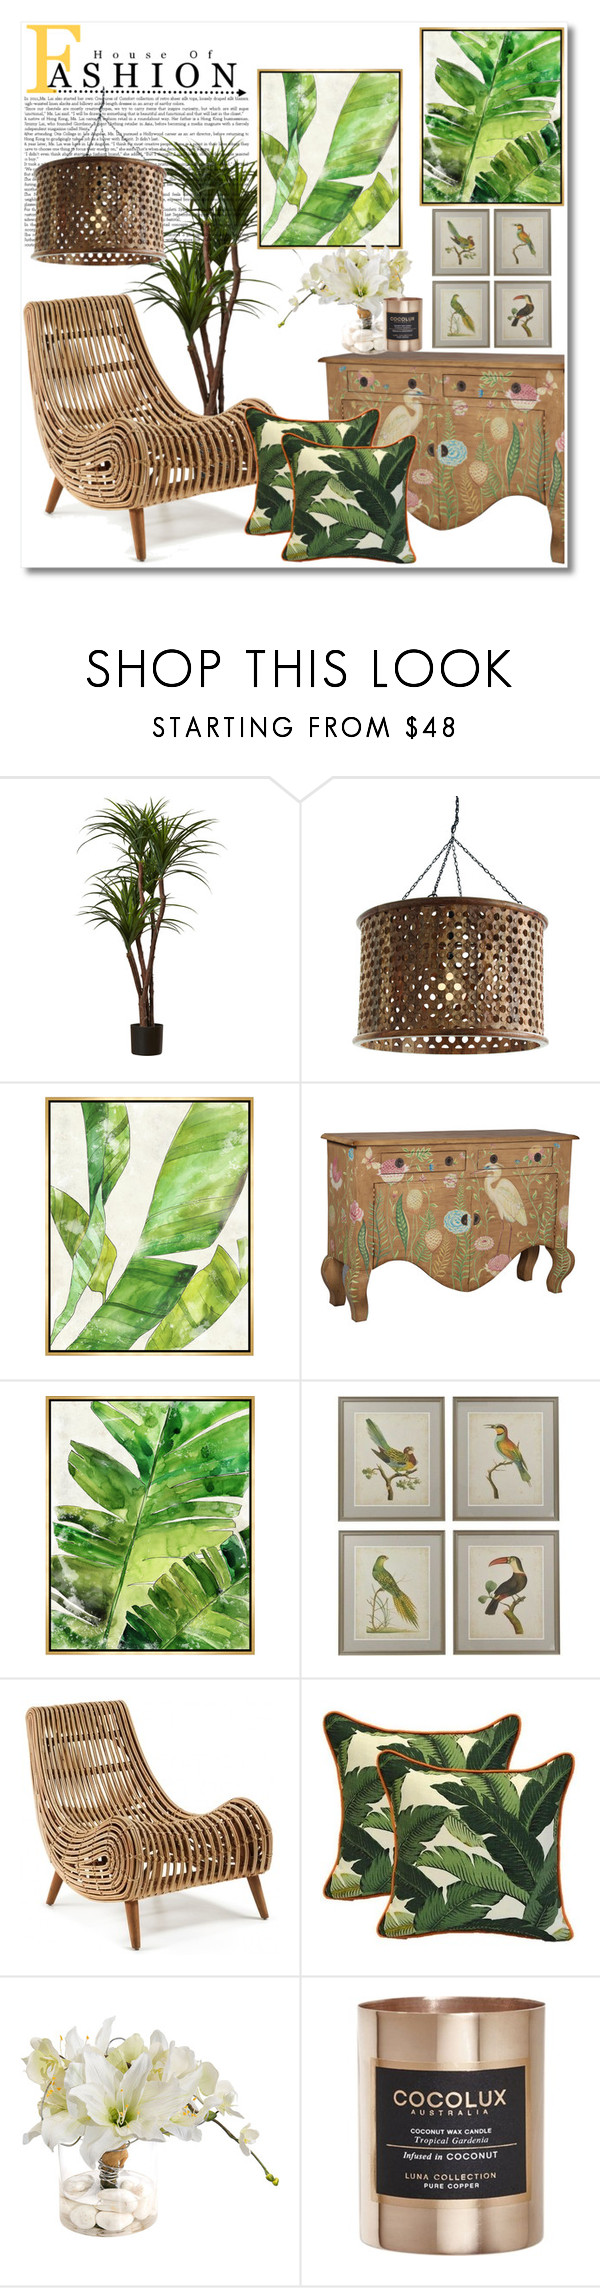 """Tropical Home"" by vkmd ❤ liked on Polyvore featuring interior, interiors, interior design, home, home decor, interior decorating, Arteriors, Barclay Butera, John-Richard and Cocolux"